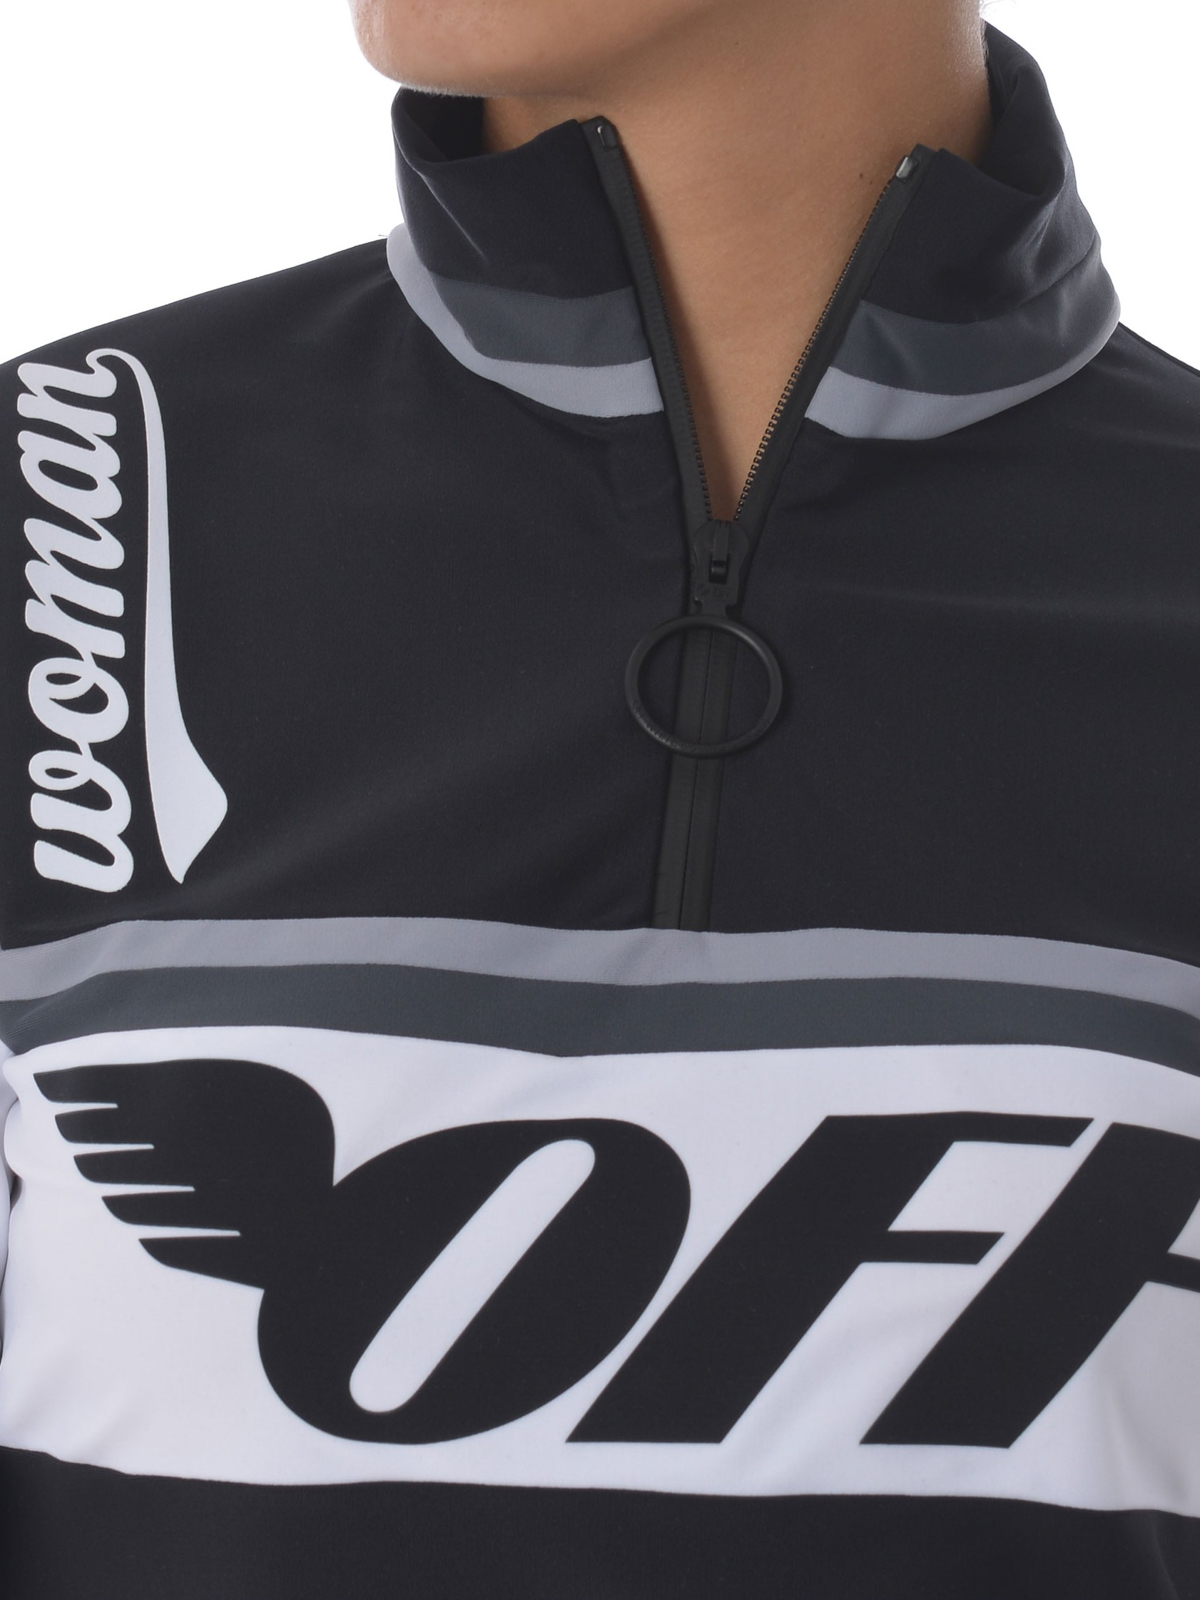 Off-White - Printed cycling T-shirt - t-shirts - OWAD046S189291541010 04a0aff0f